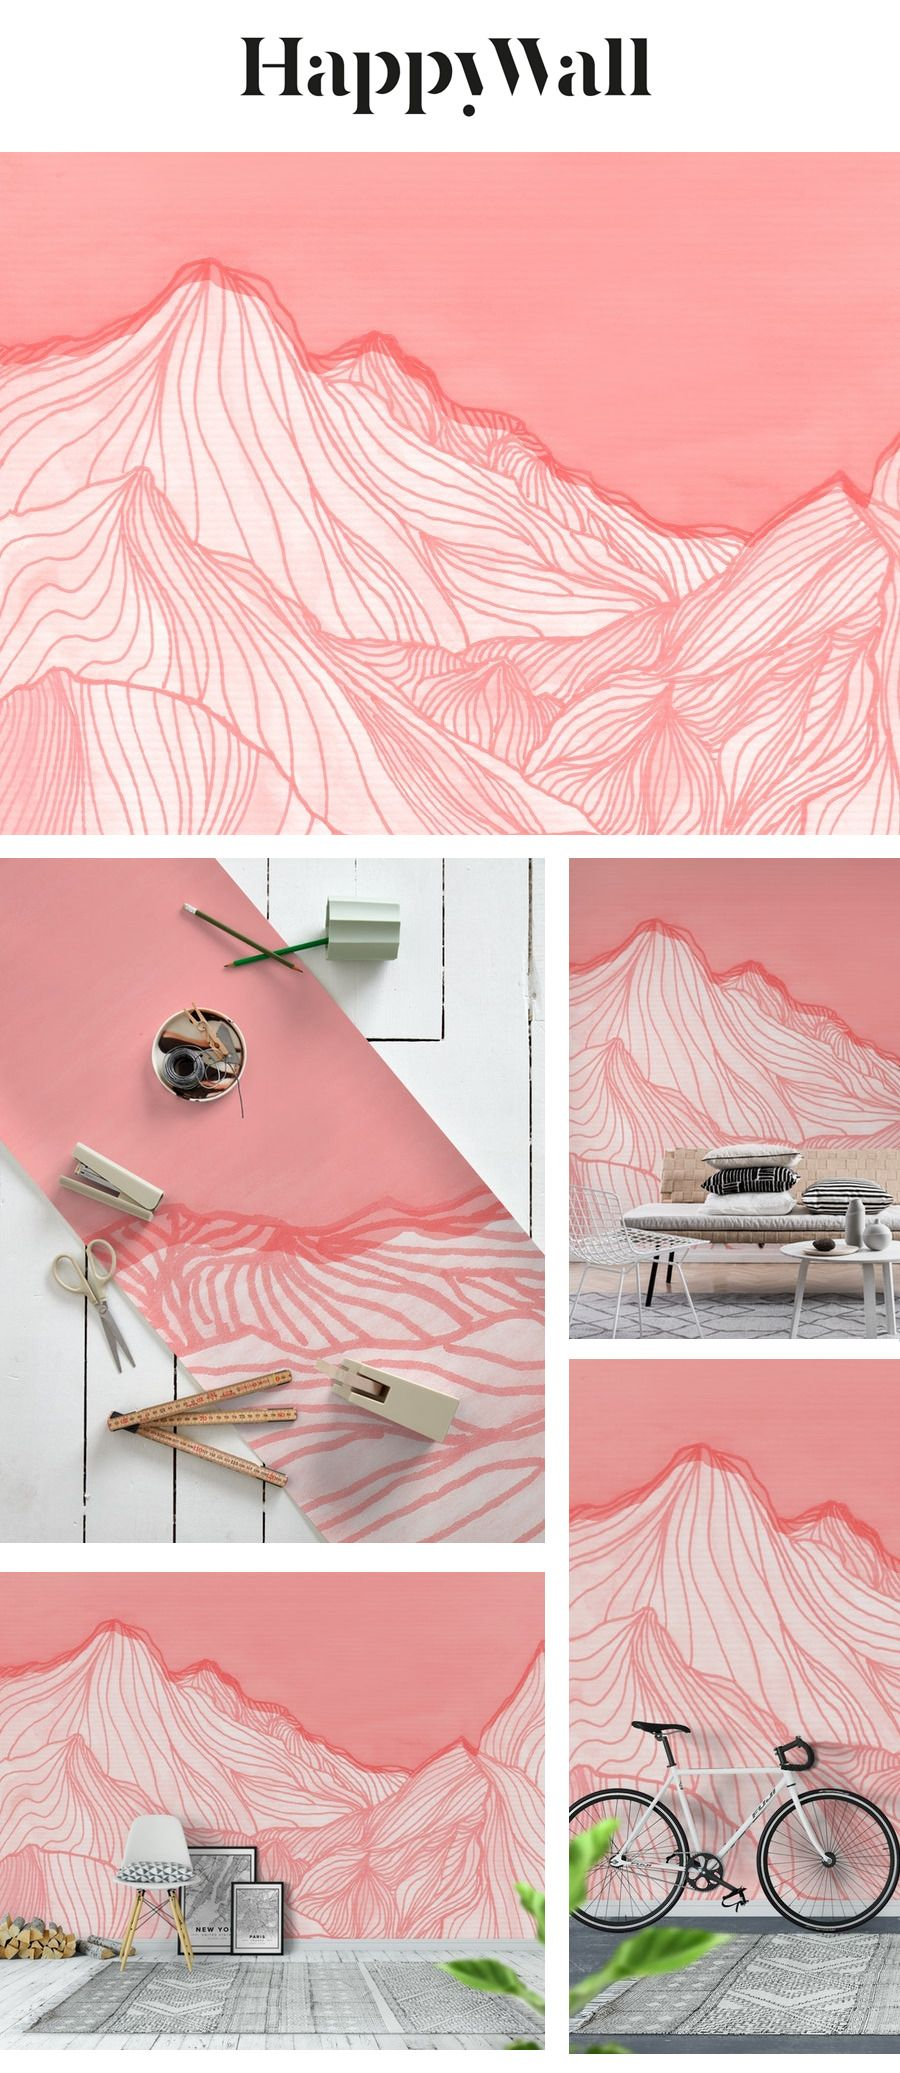 Lines In The Mountains Pink Wall Mural Abstract Wallpaper Pink Walls Wall Murals